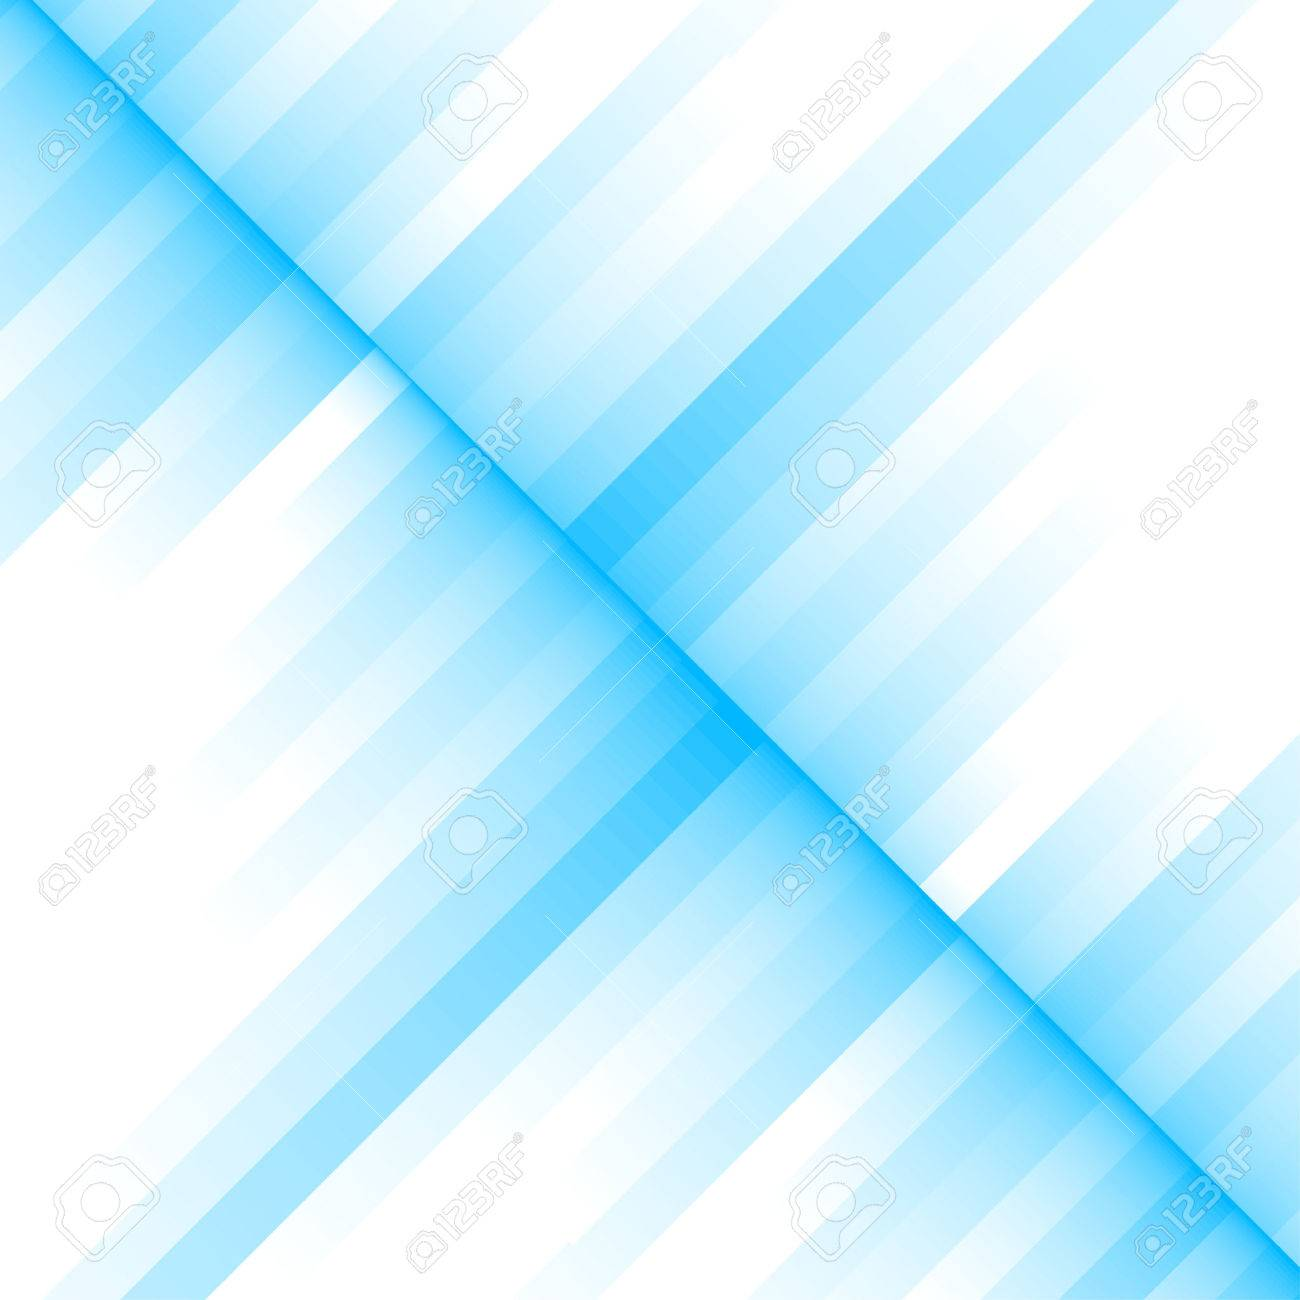 winter abstract background - 8213568